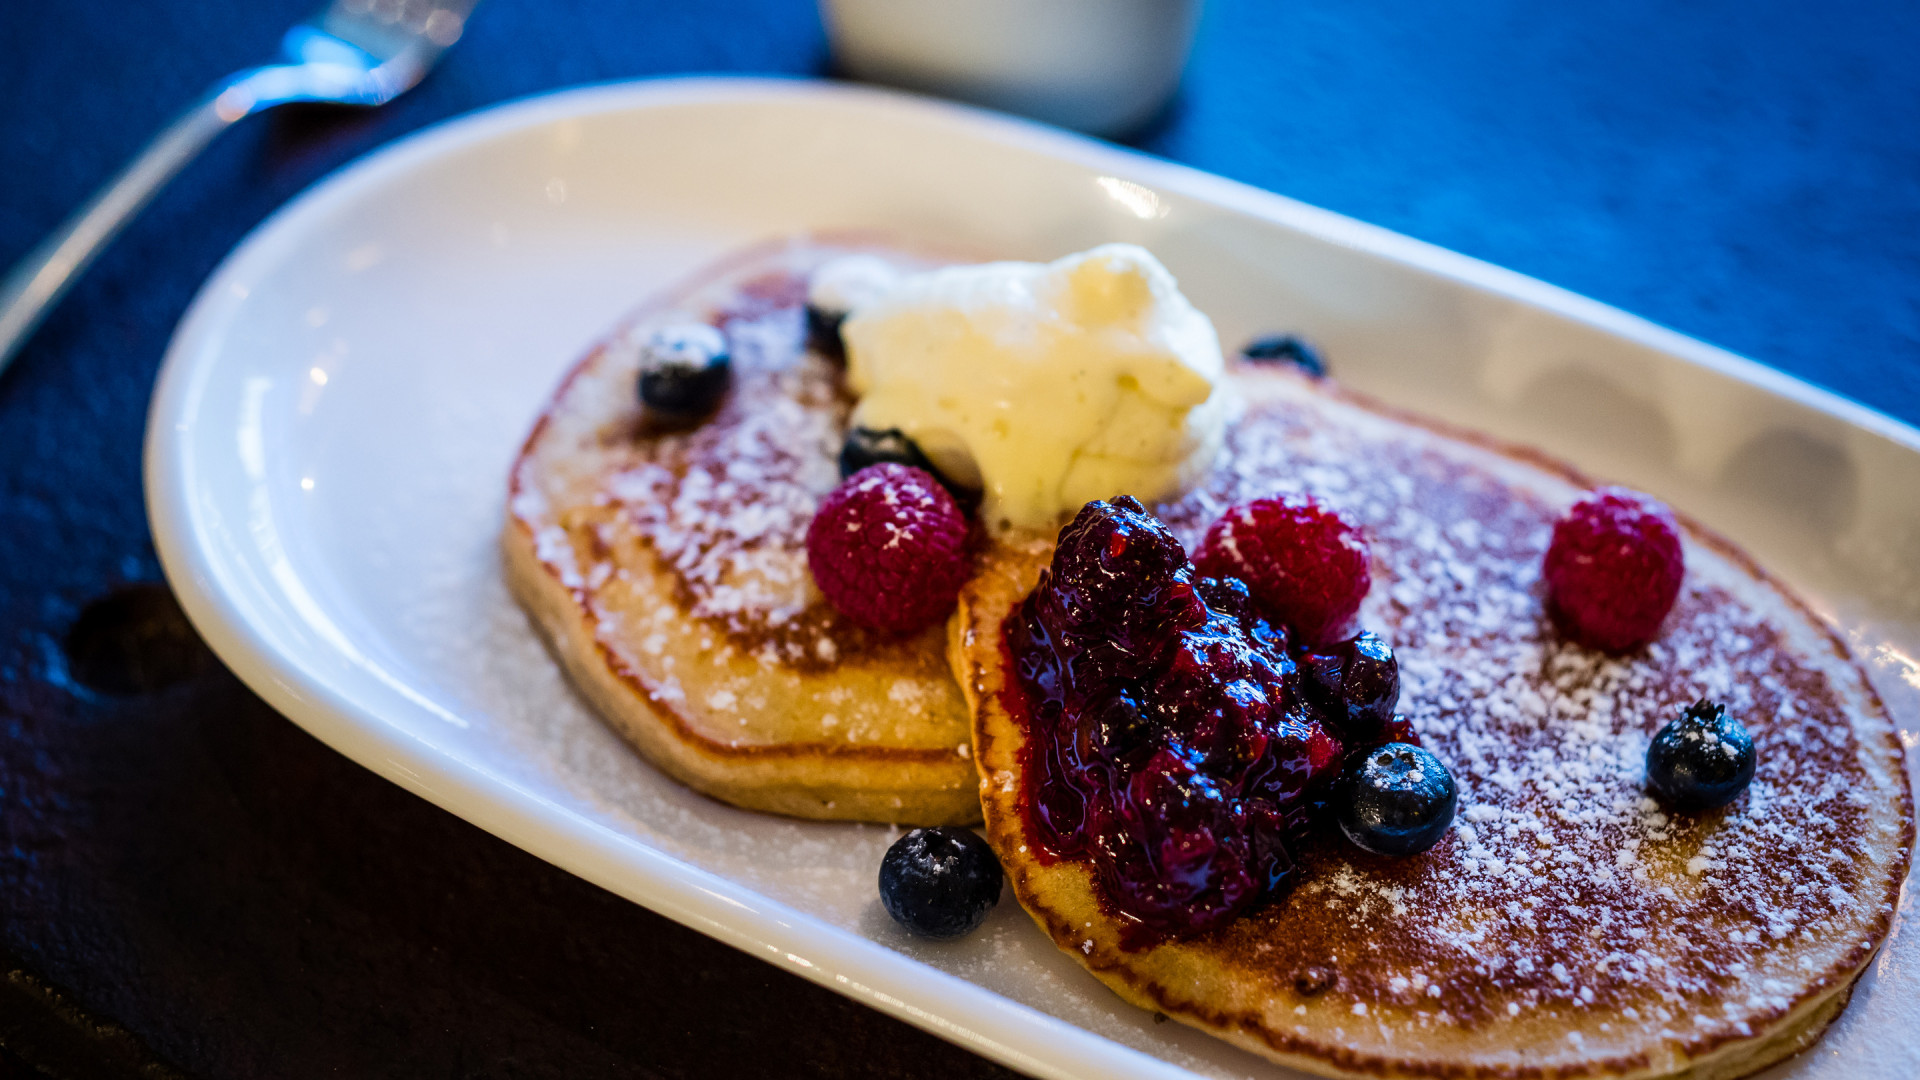 Pancakes at Riding House Cafe